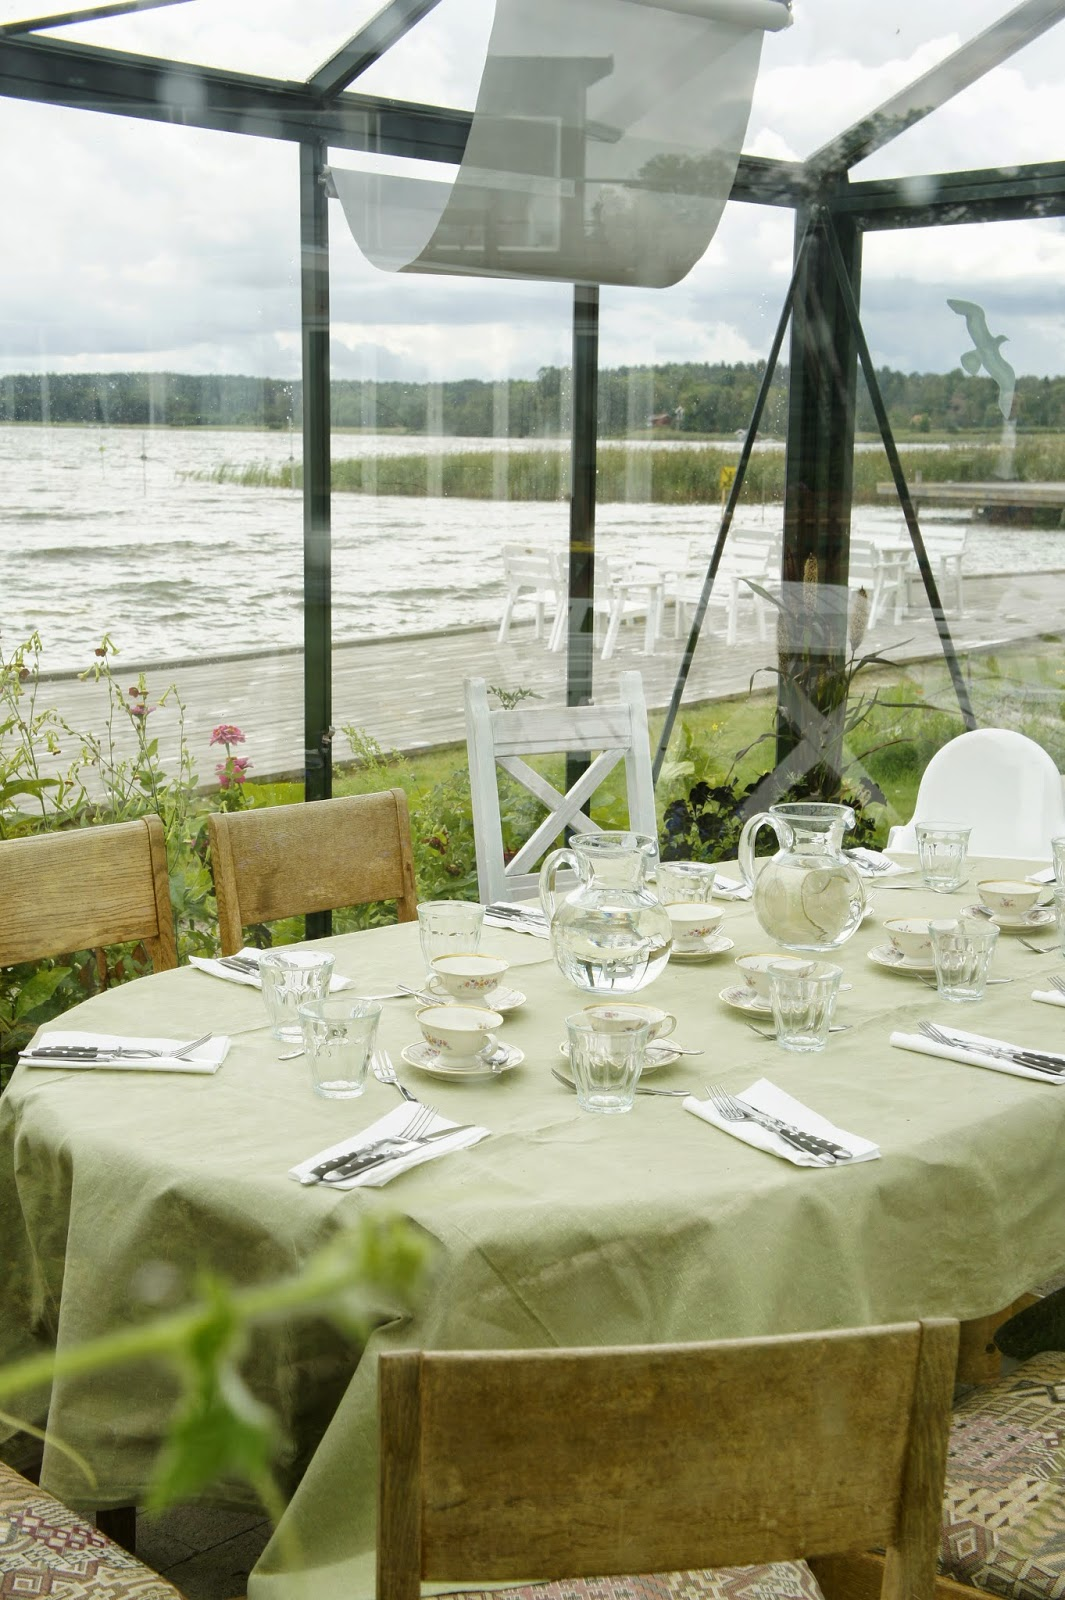 Hornuddens Tradgard eco cafe Sweden